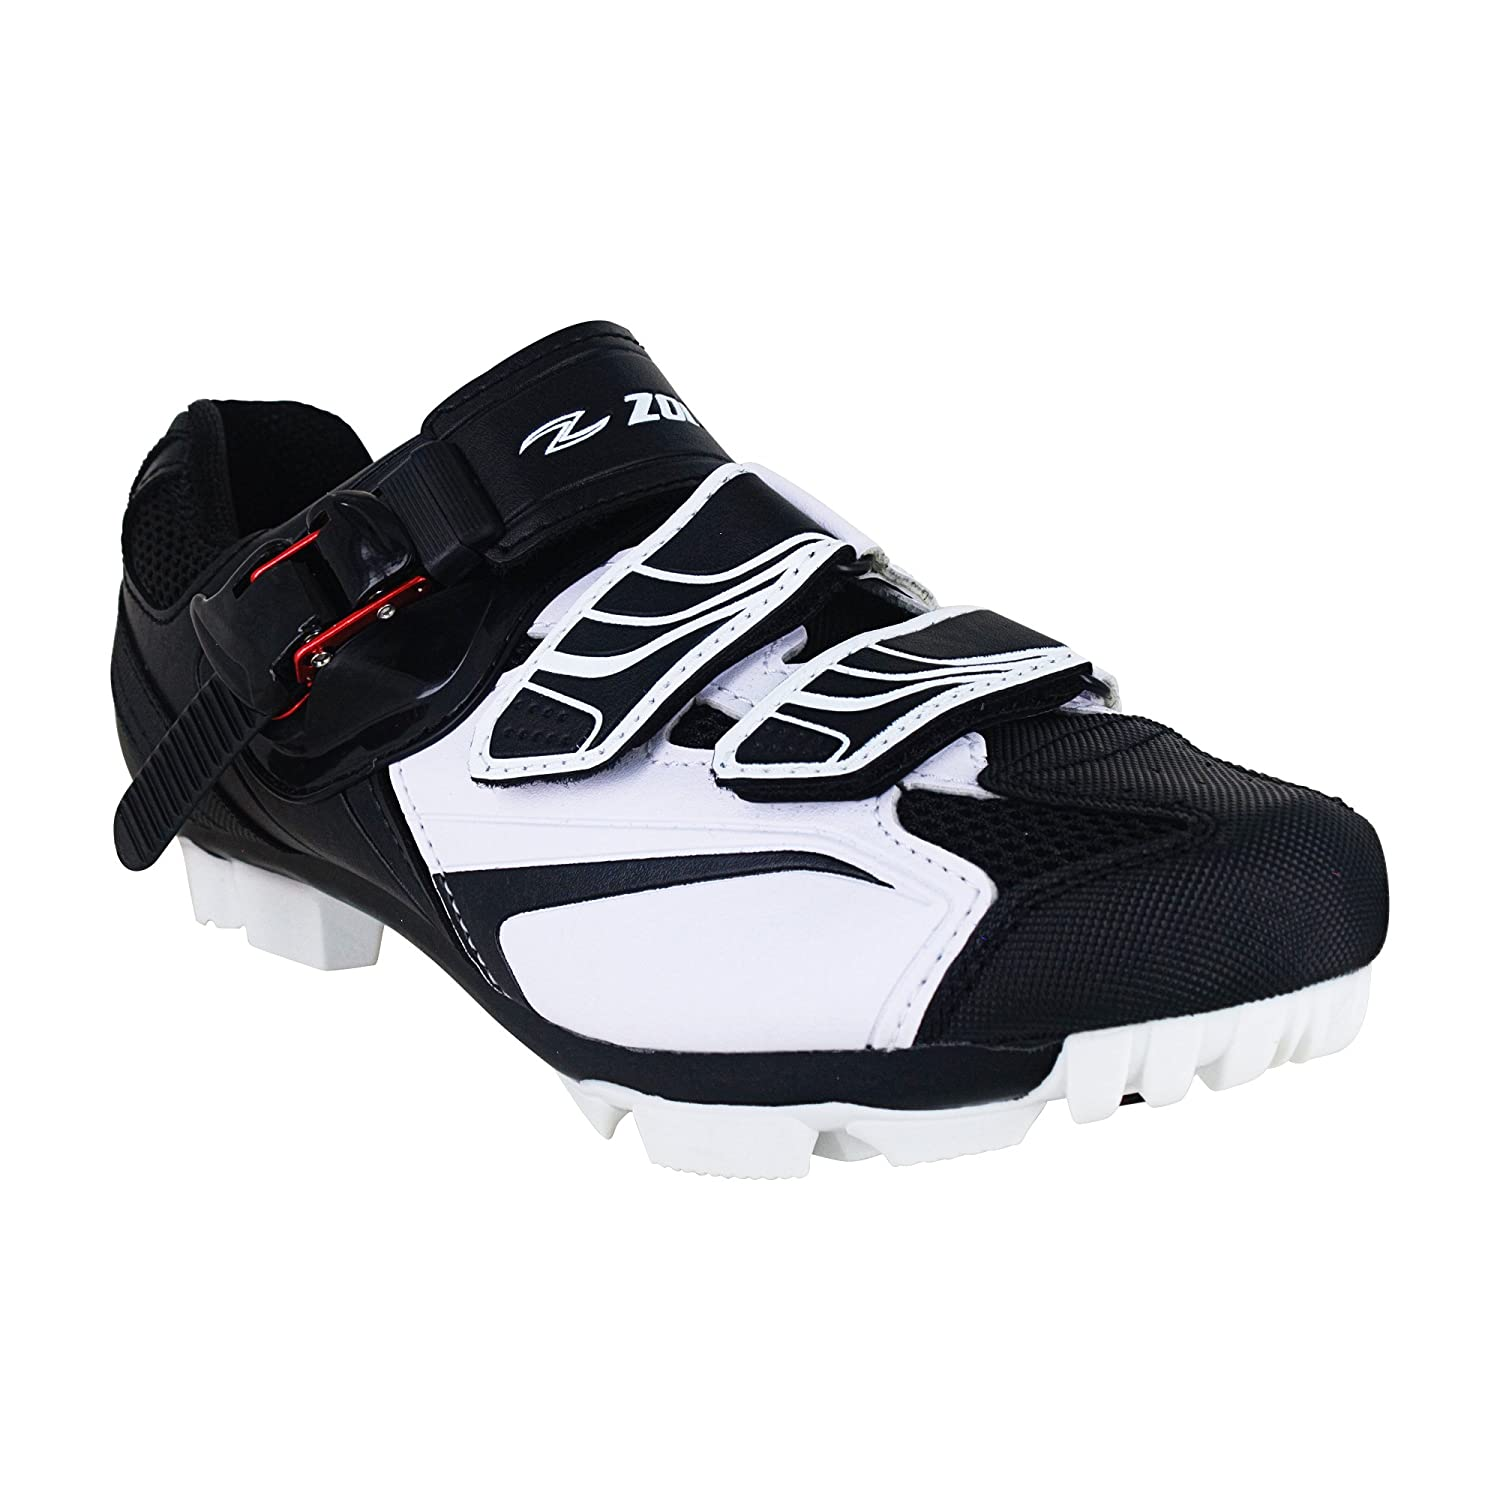 9c79c210a2db4 Zol White MTB Indoor Cycling Shoes